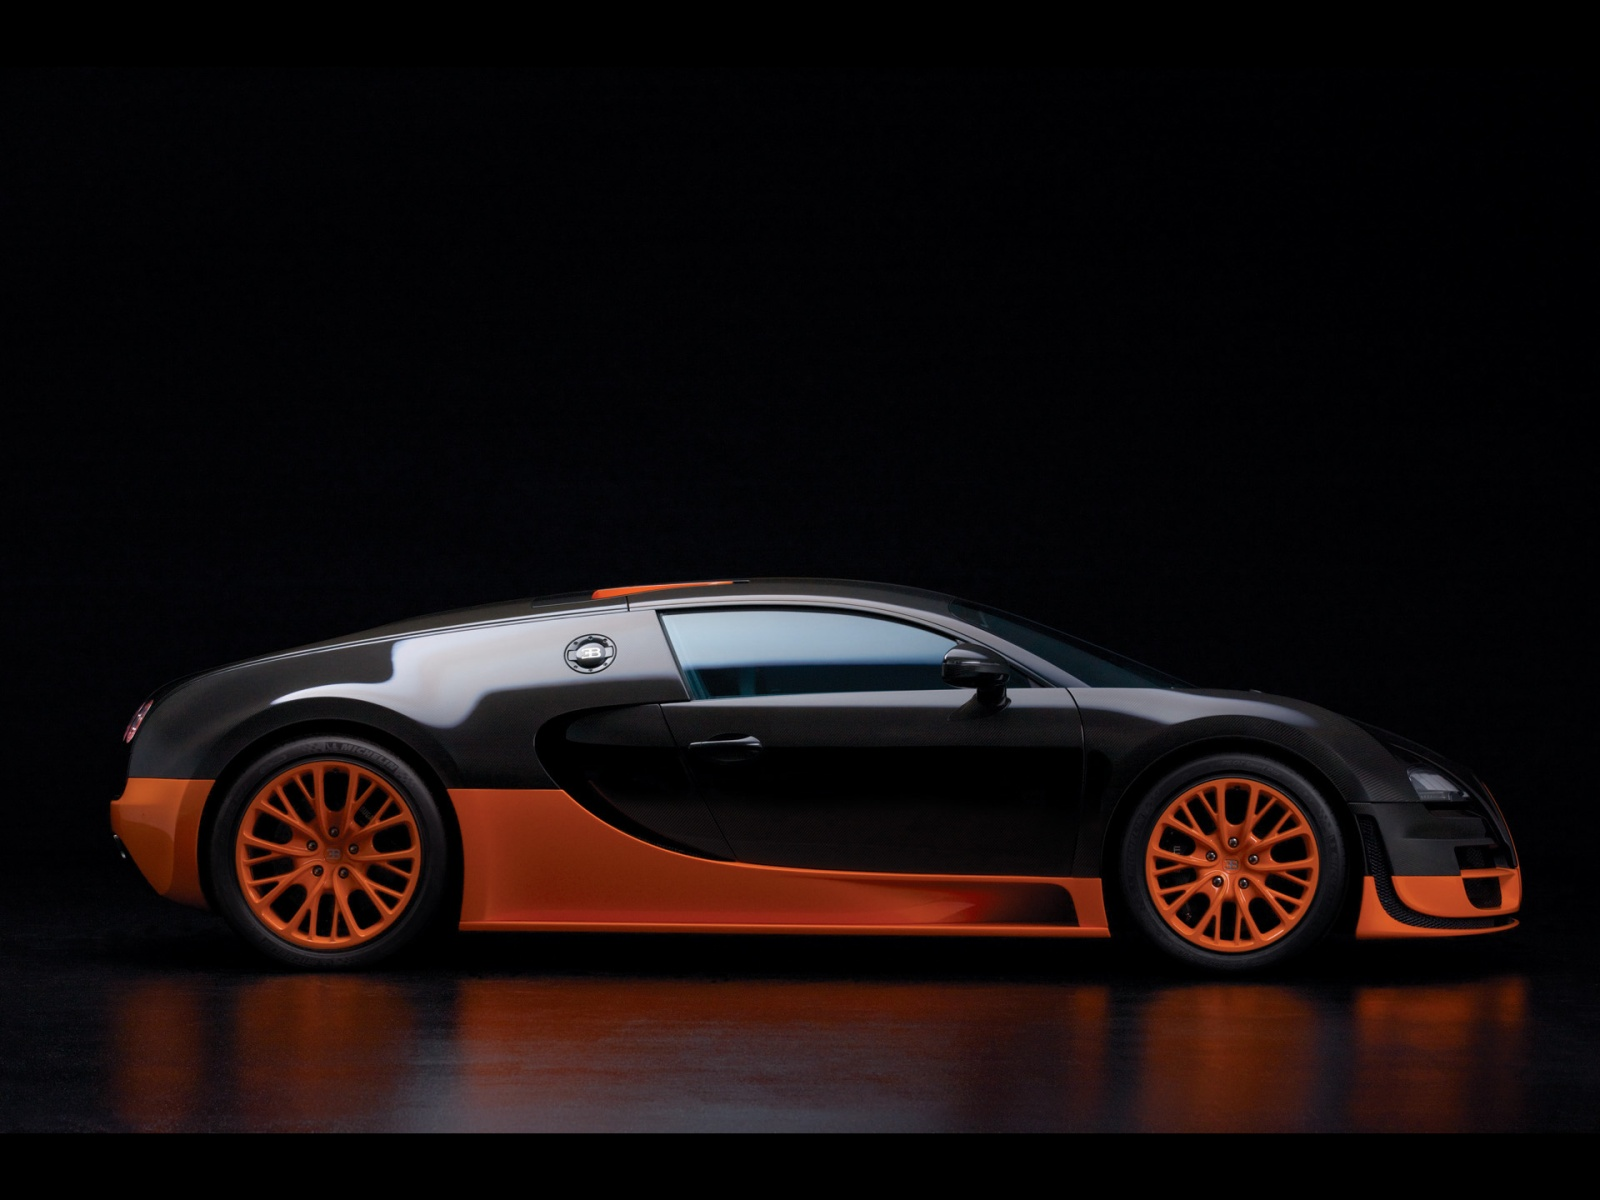 Bugatti Veyron Supersport on